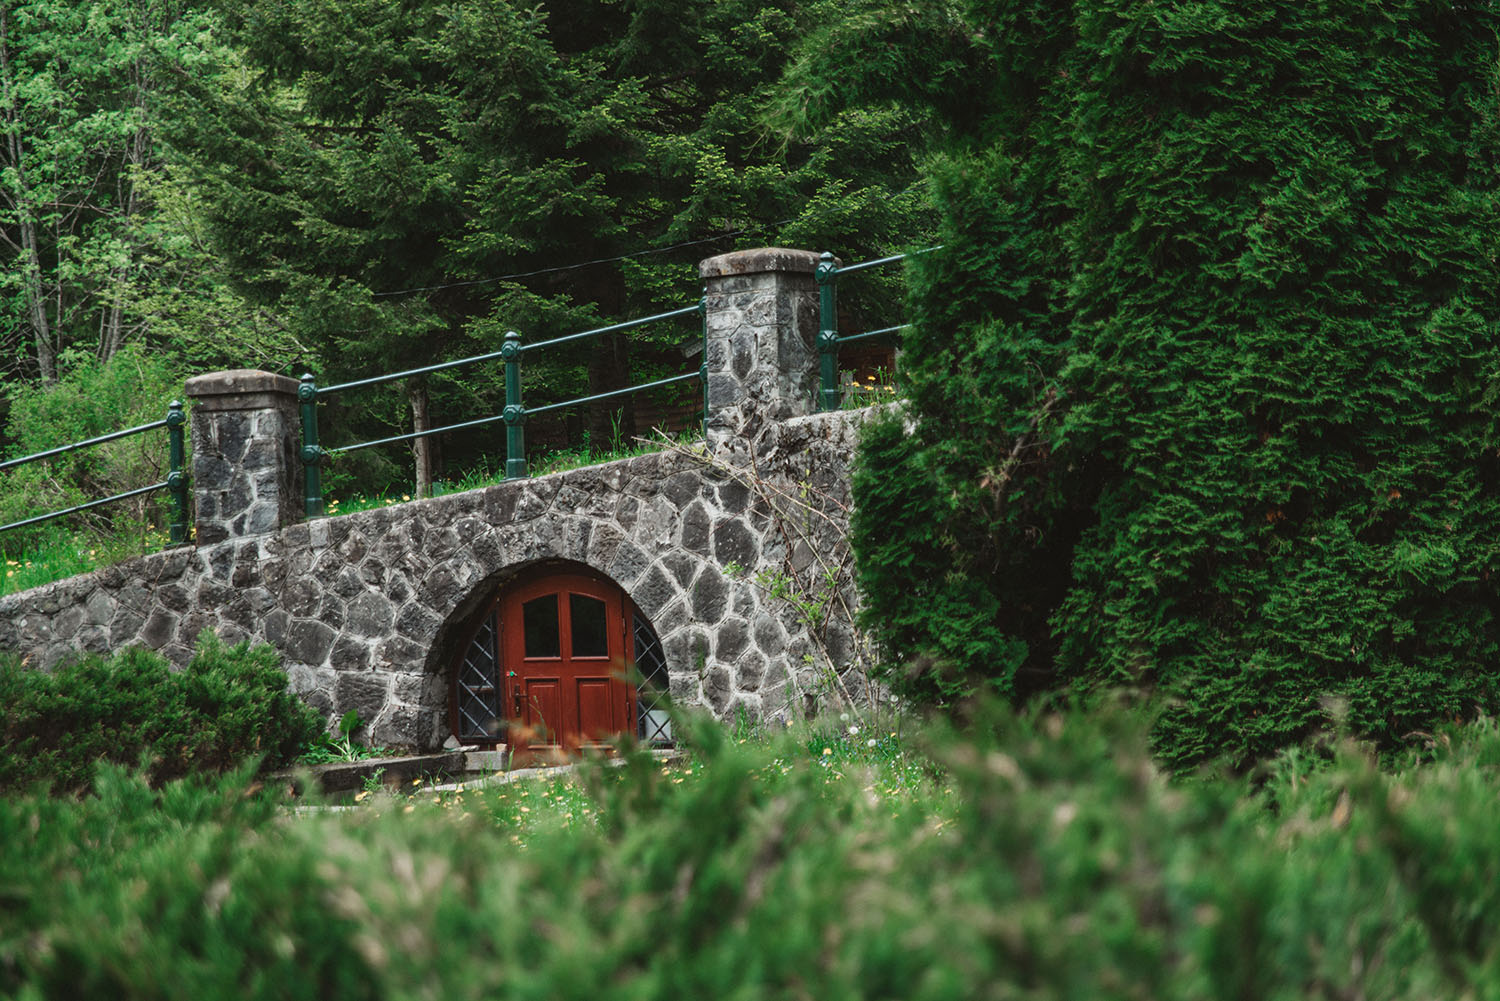 Hobbit entrance next to Pelisor Castle in Sinaia, Romania